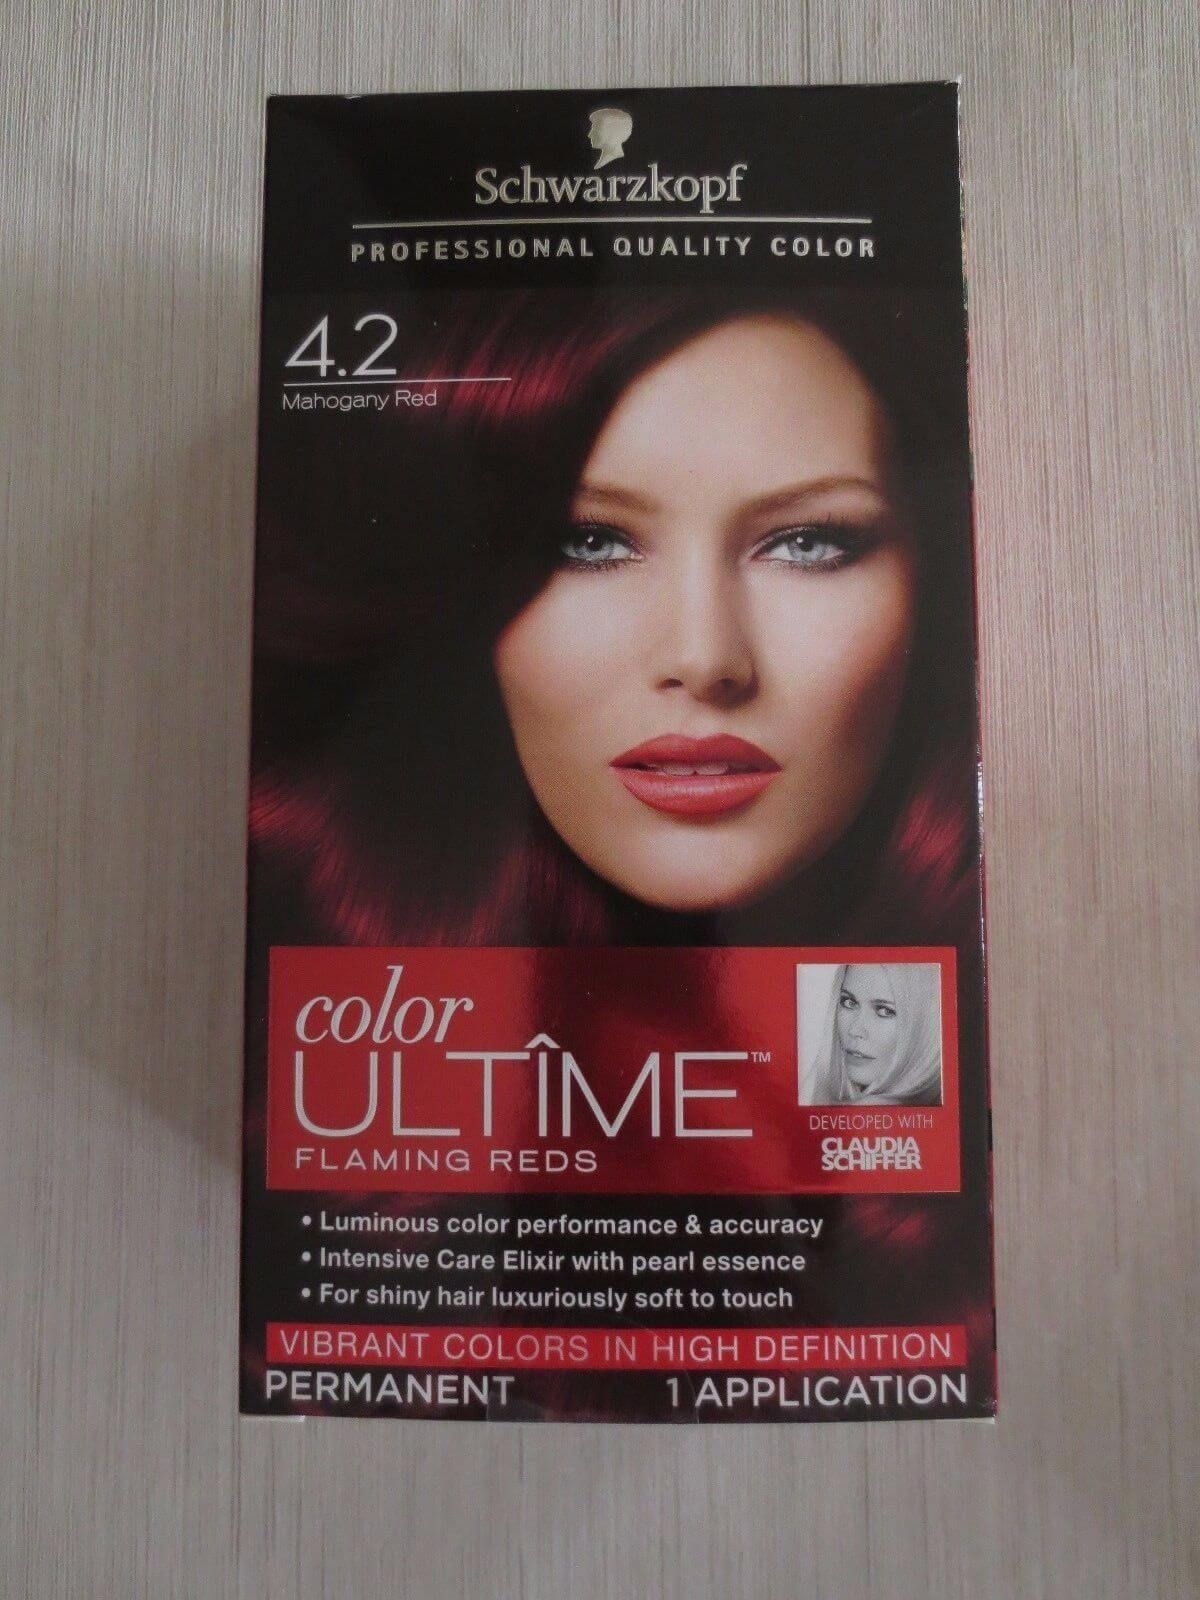 Free Schwarzkopf Hair Color Freebiefriday Coupons